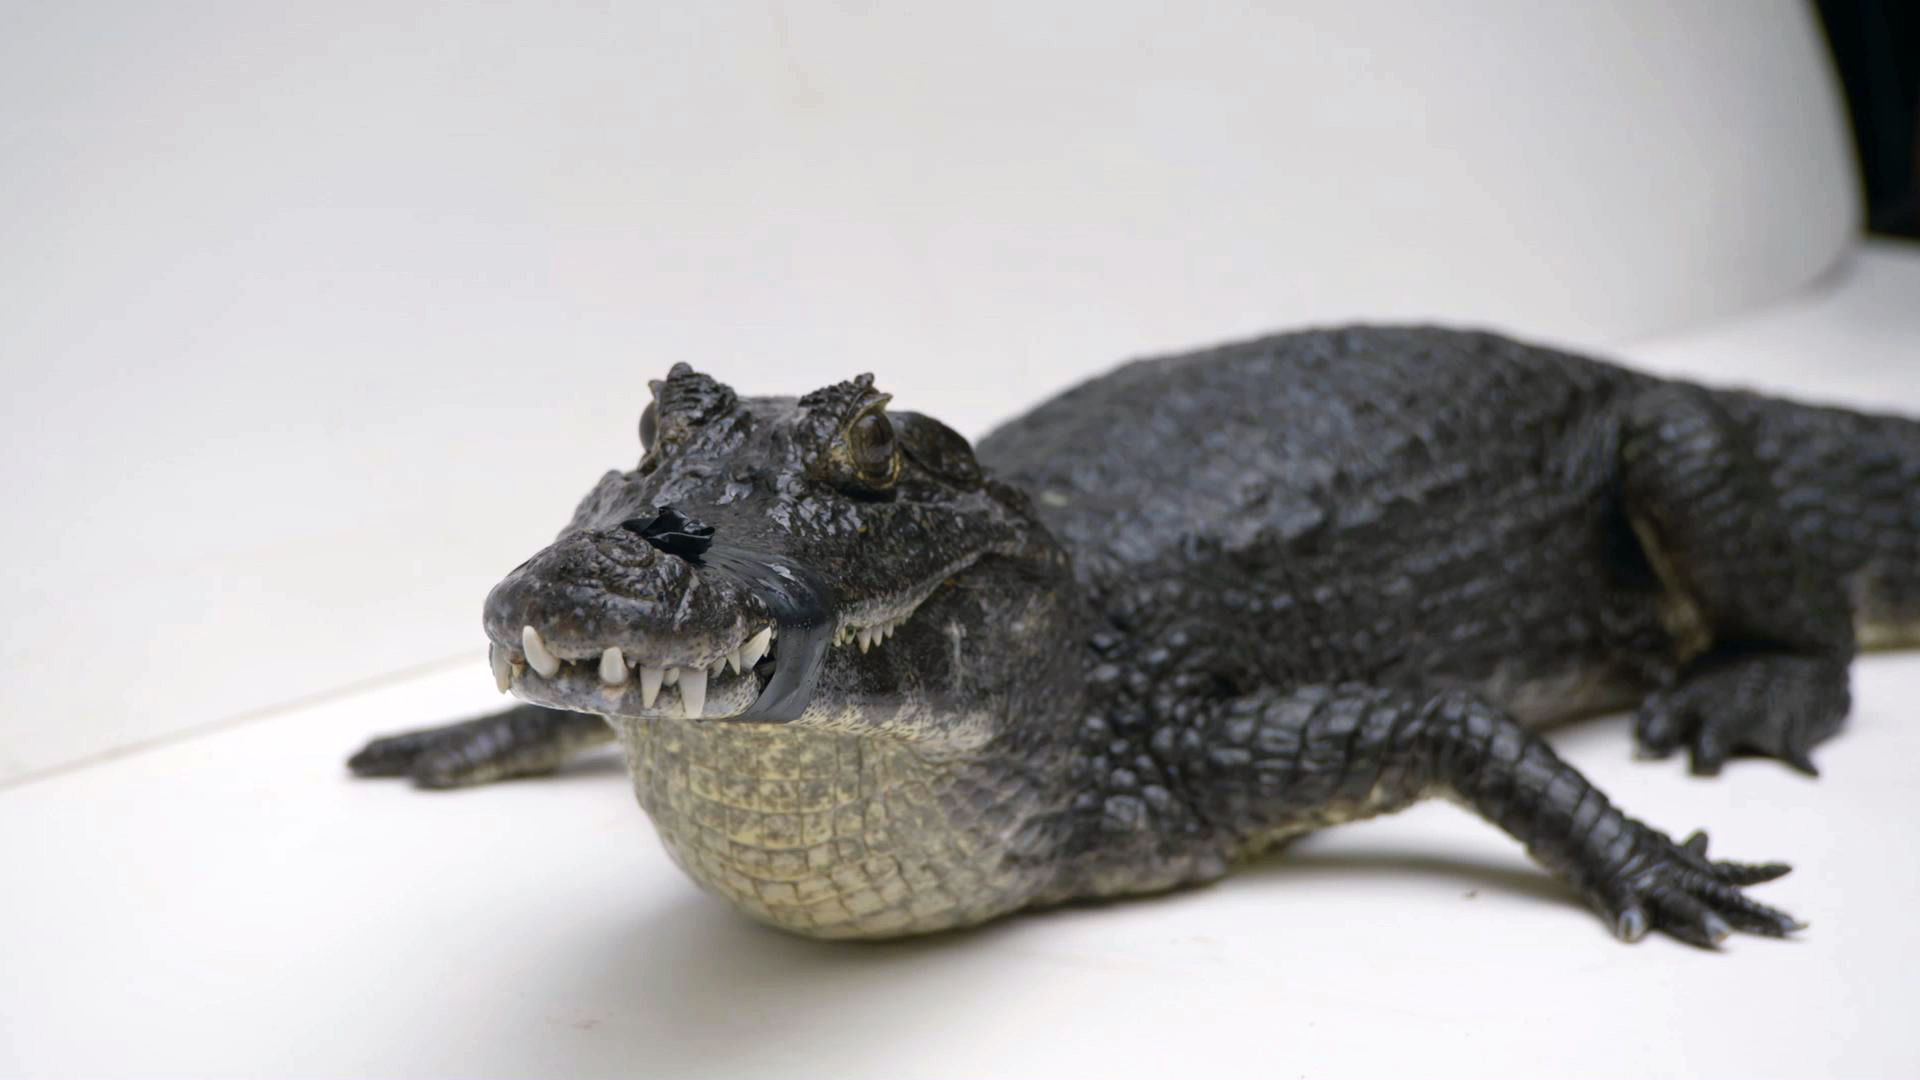 Creature Clip: Yacare Caiman - 2:27 - Watch as Joel photographs the yacare caiman for The Photo Ark.